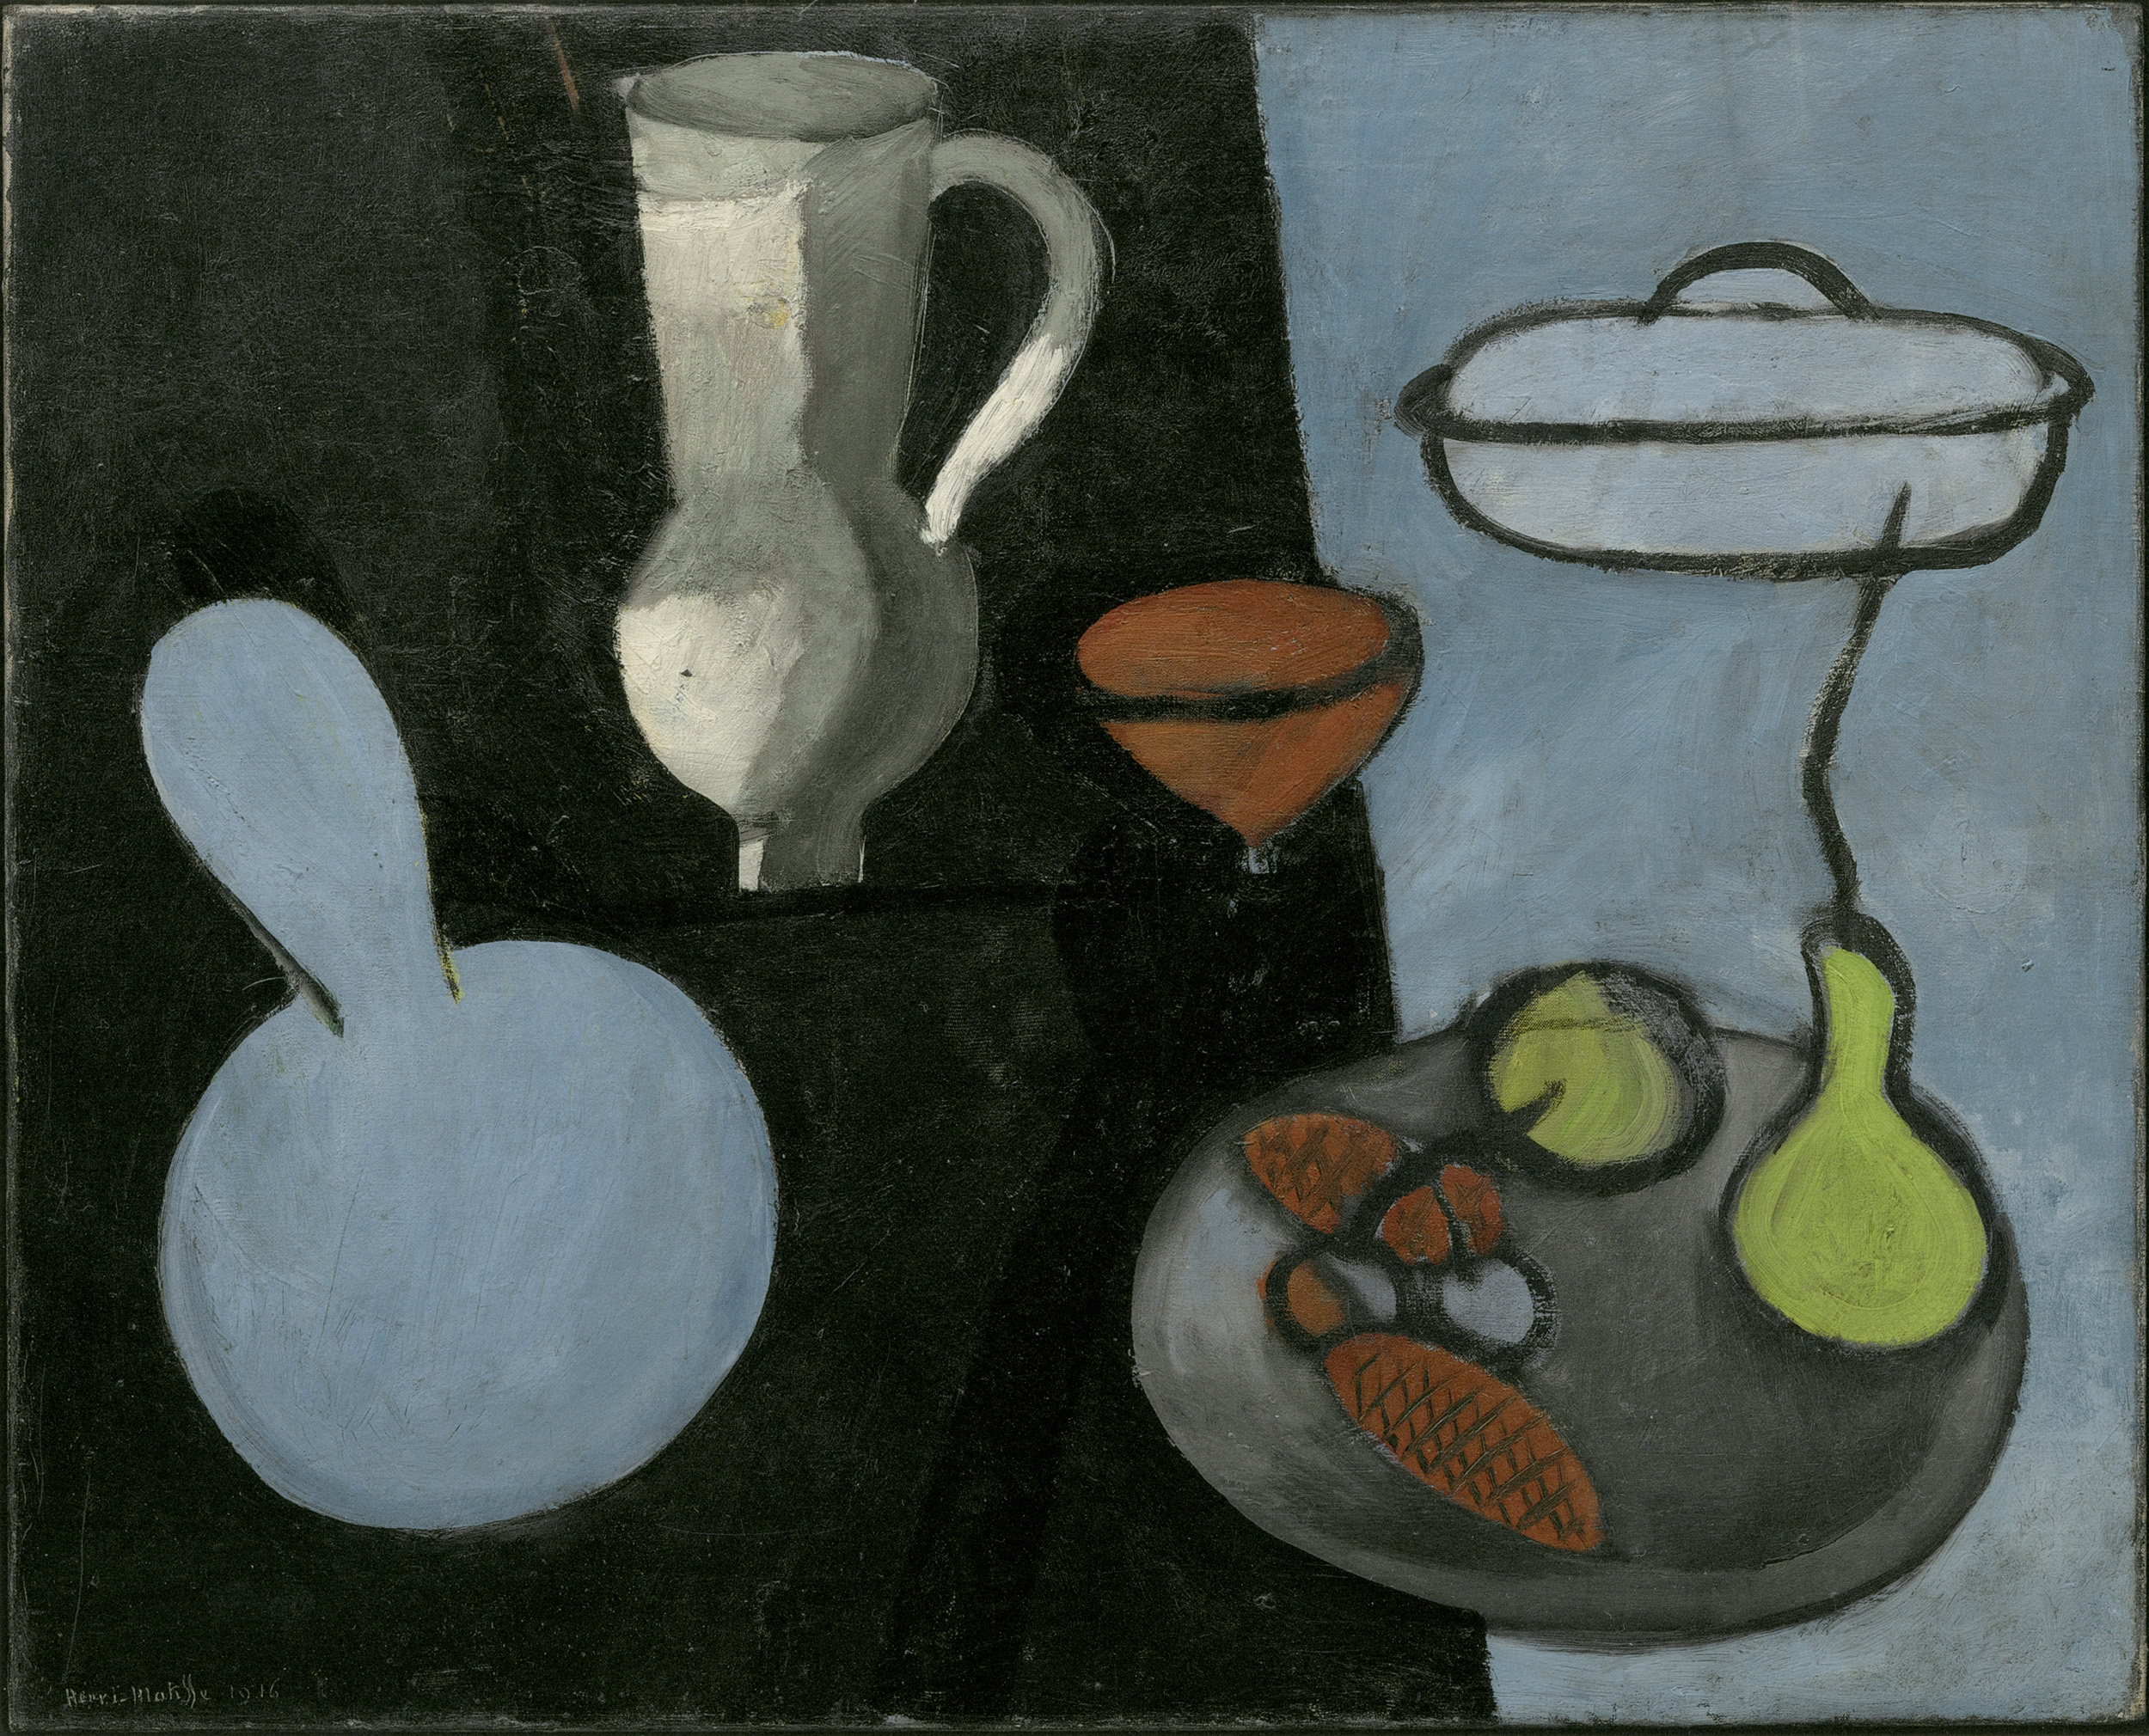 Henri Matisse, Gourds, Issy-les-Moulineaux, 1915-16 Oil on canvas, 65.1 x 80.9 cm The Museum of Modern Art, New York. Mrs. Simon Guggenheim Fund, 109.1935 Photo © Archives H. Matisse © Succession H. Matisse/DACS 2017